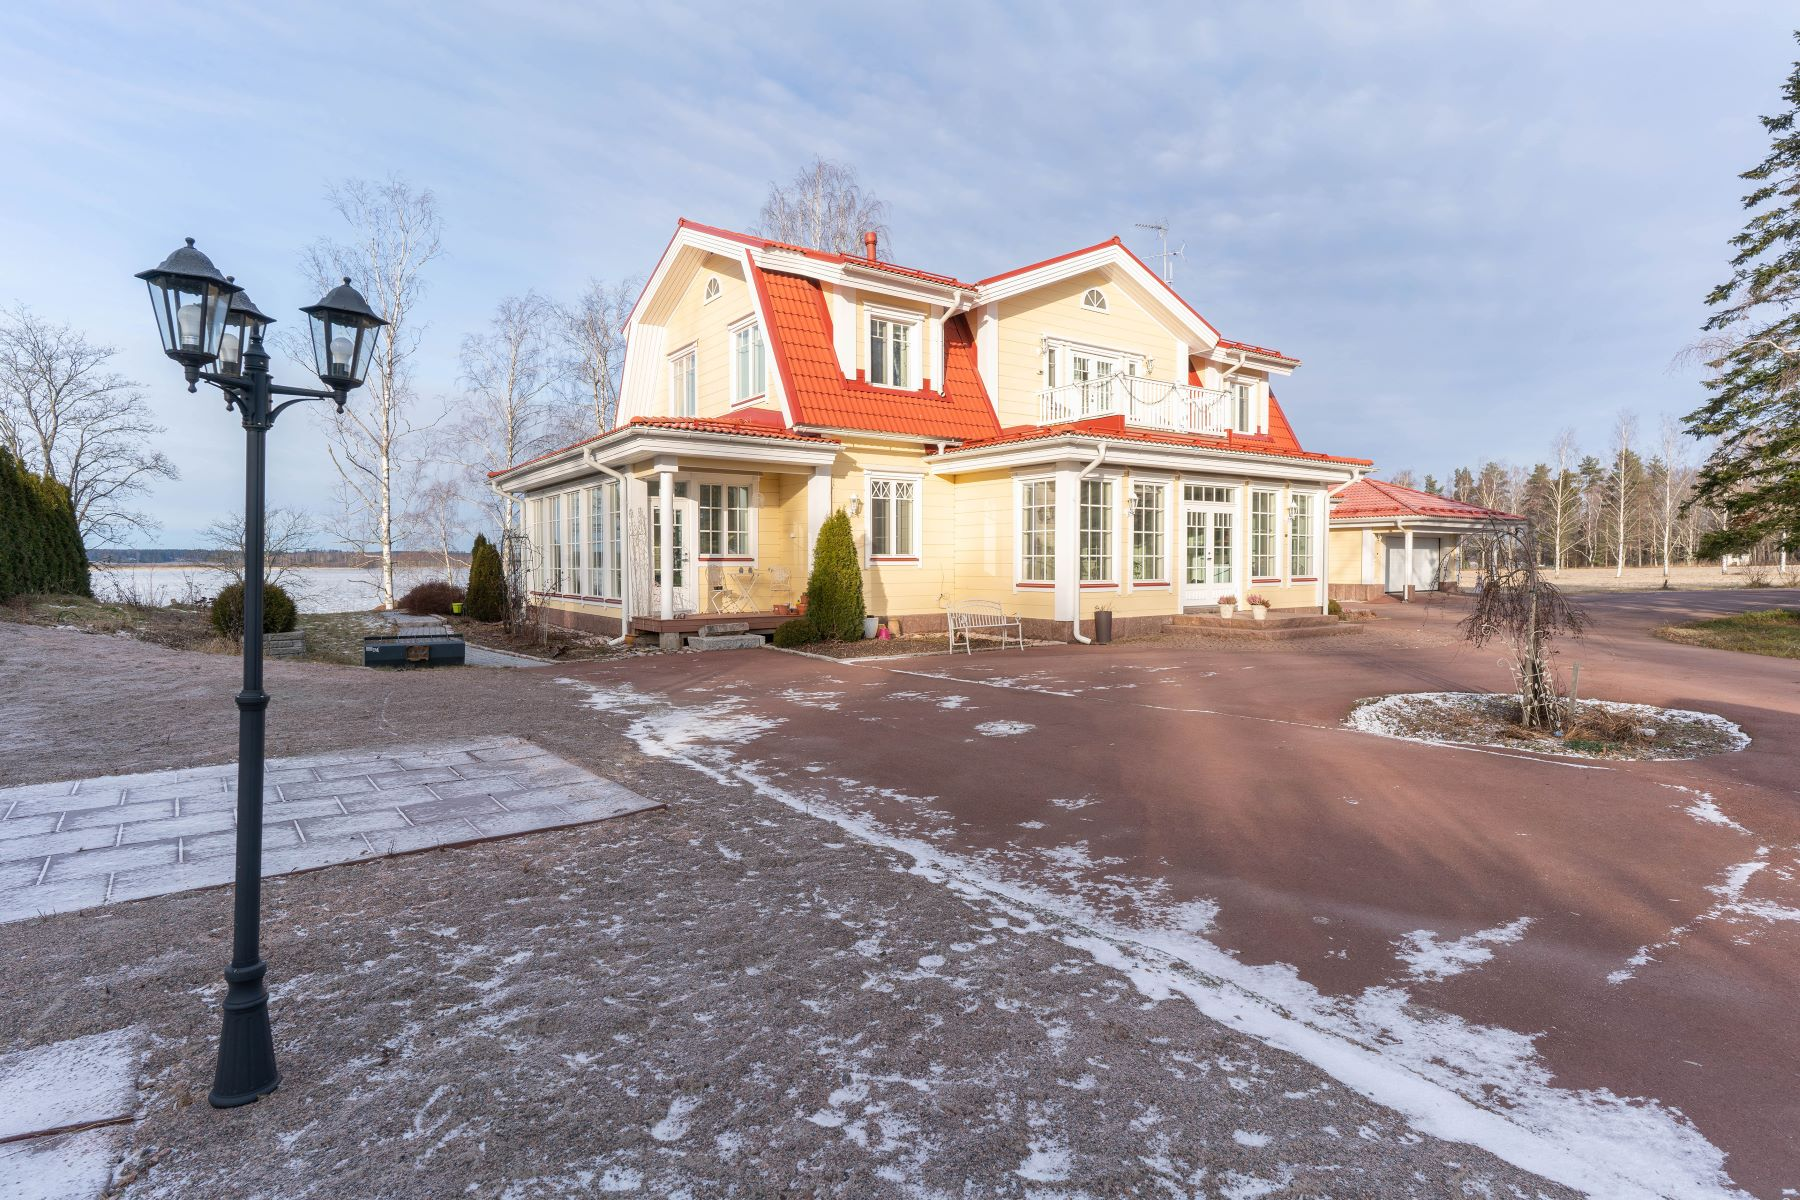 Single Family Homes for Sale at Other Uusimaa, Uusimaa Finland